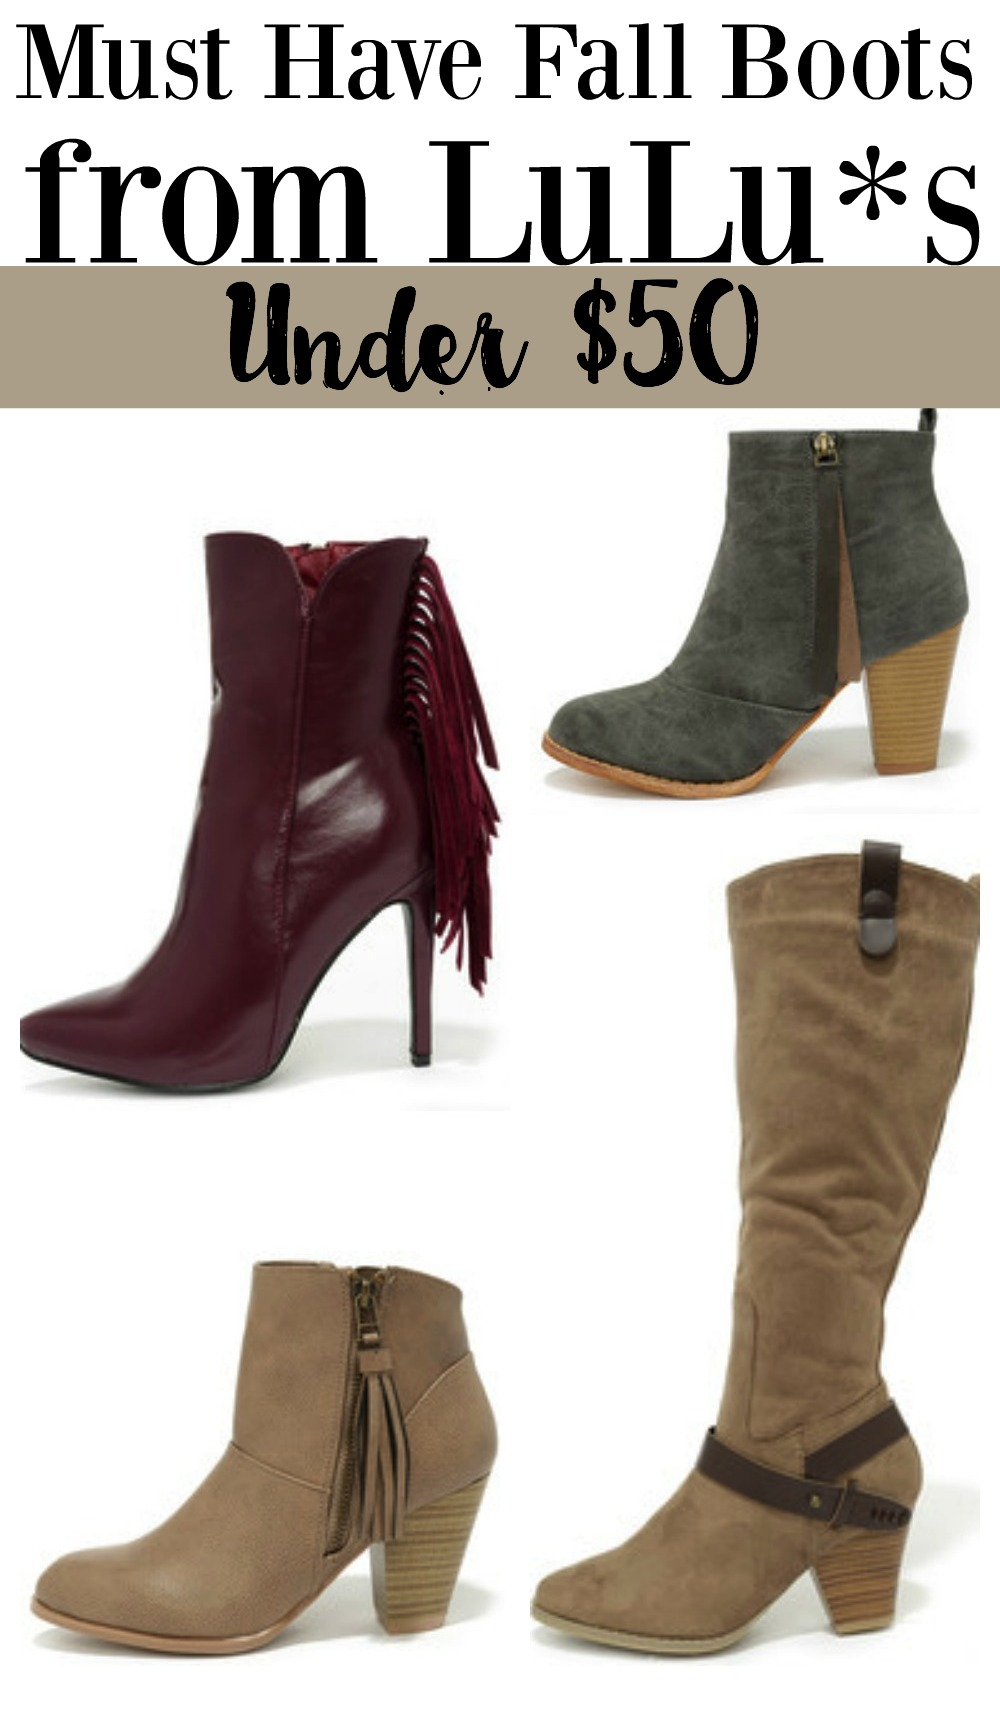 75cd43c5a7a Must Have Fall Boots Under $50 from LuLu*s